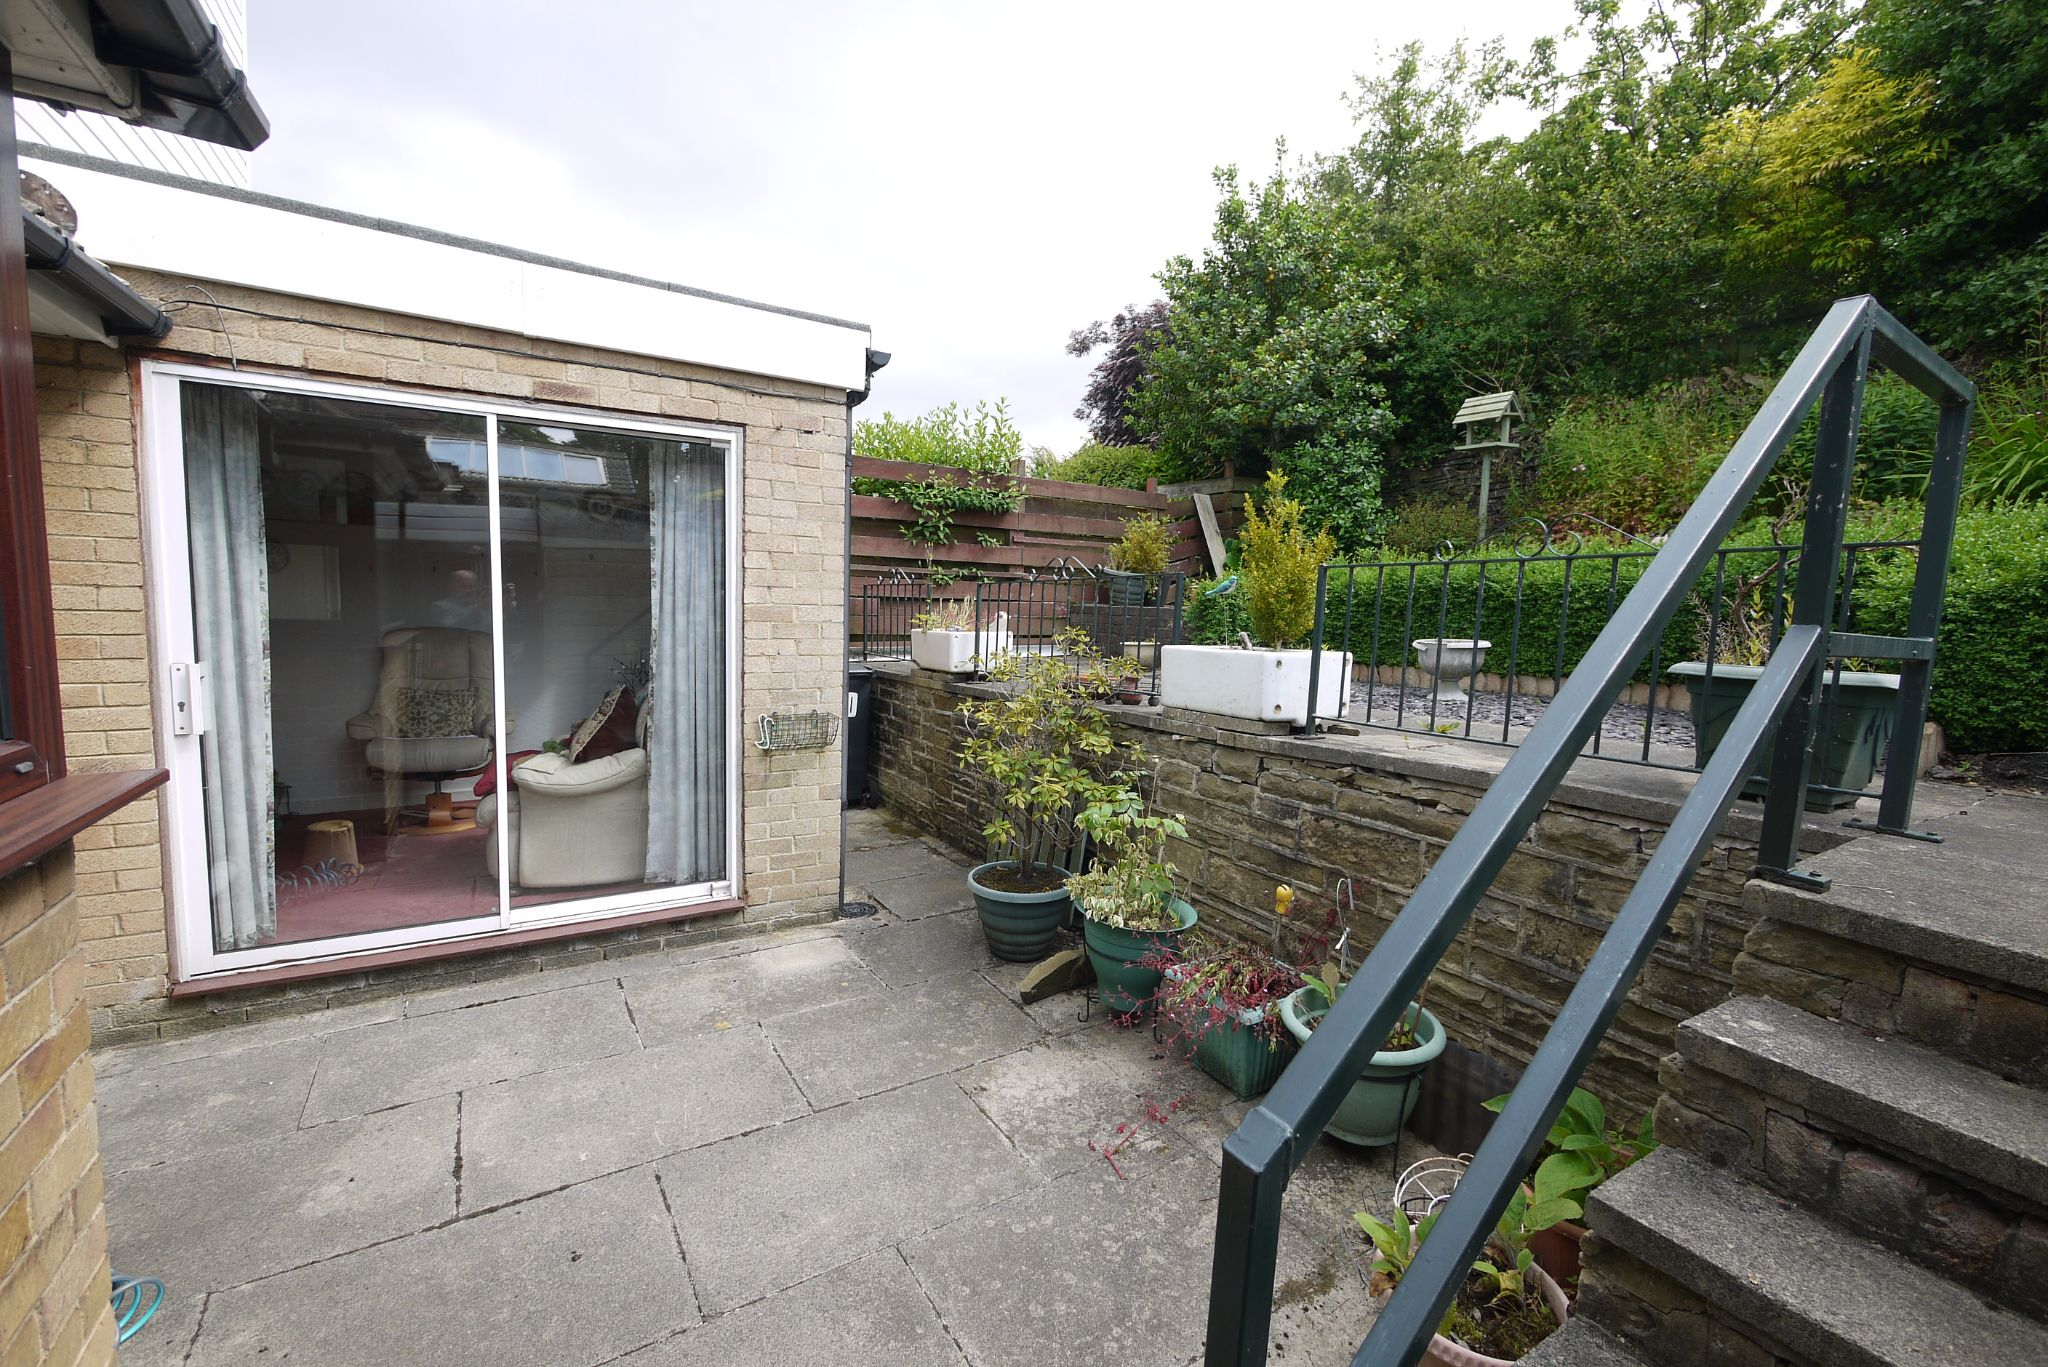 3 bedroom semi-detached bungalow SSTC in Brighouse - Photograph 13.